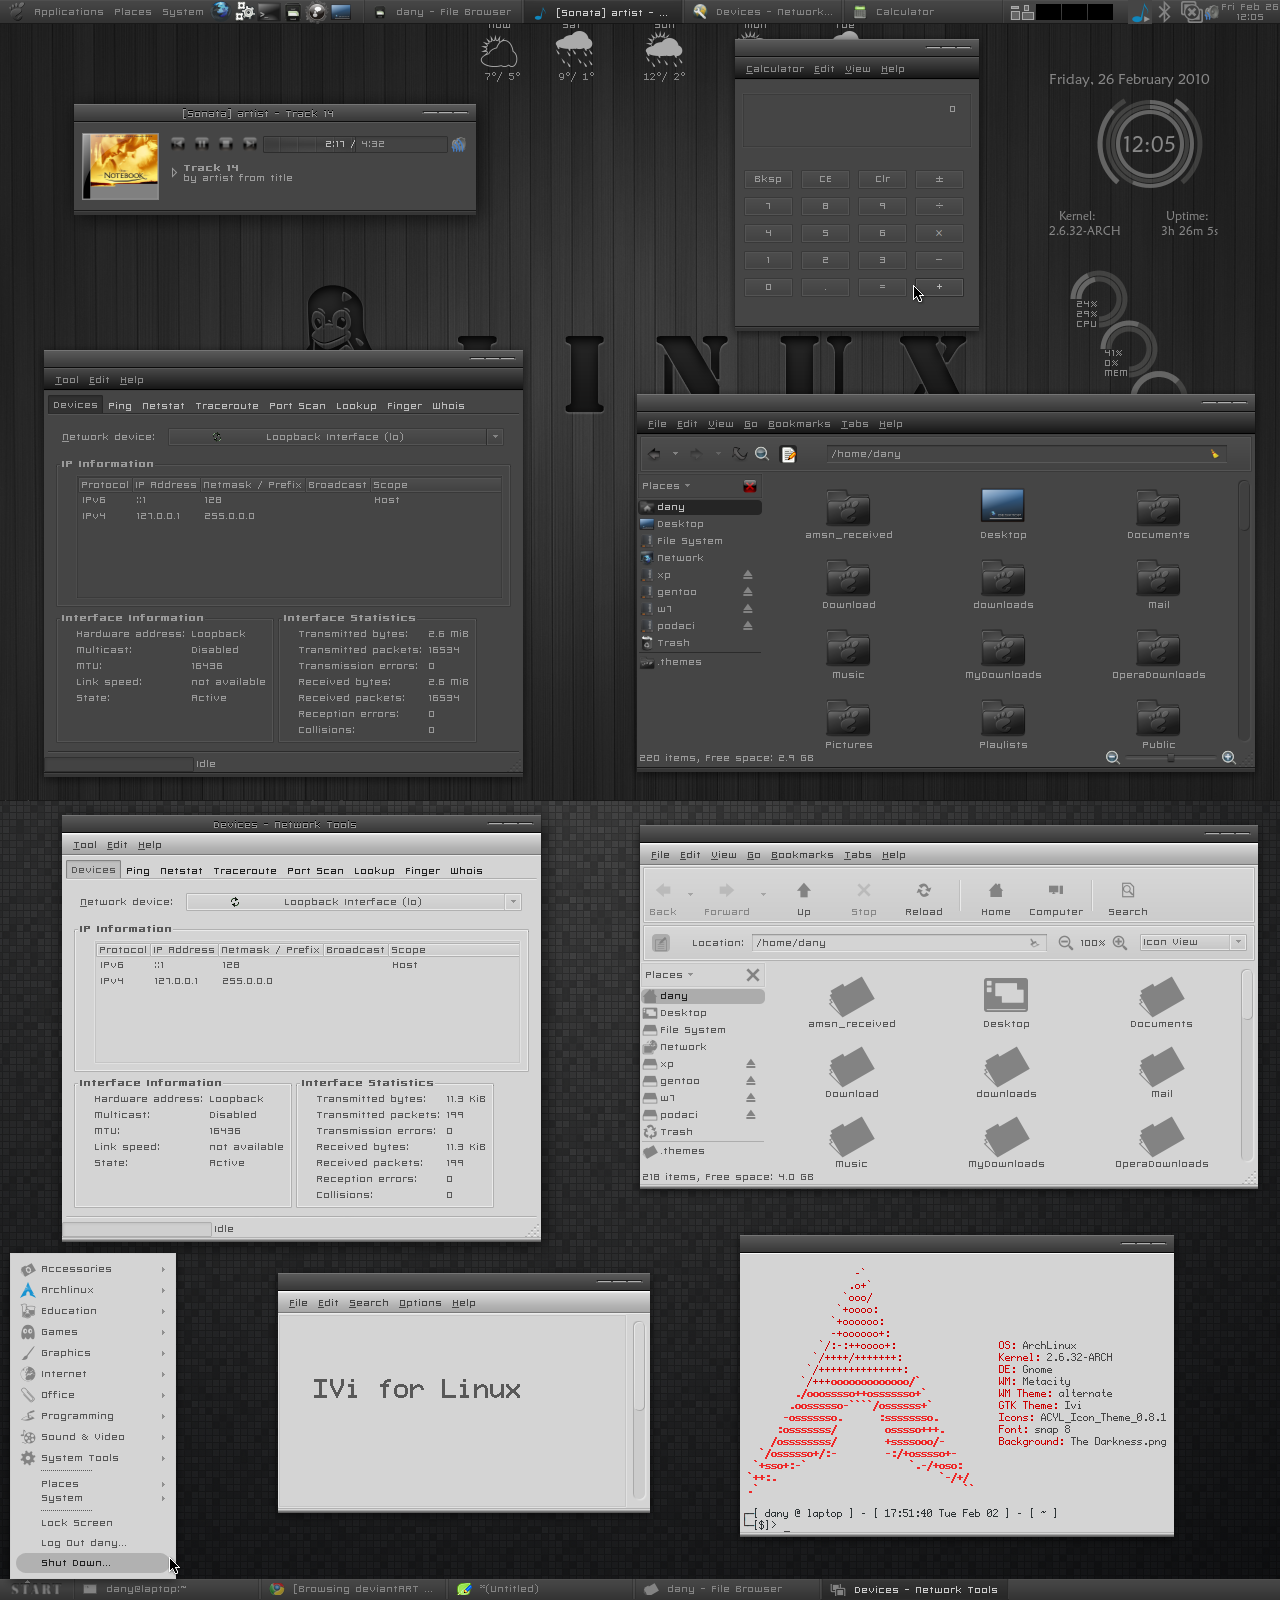 Ivi for Linux by nale12